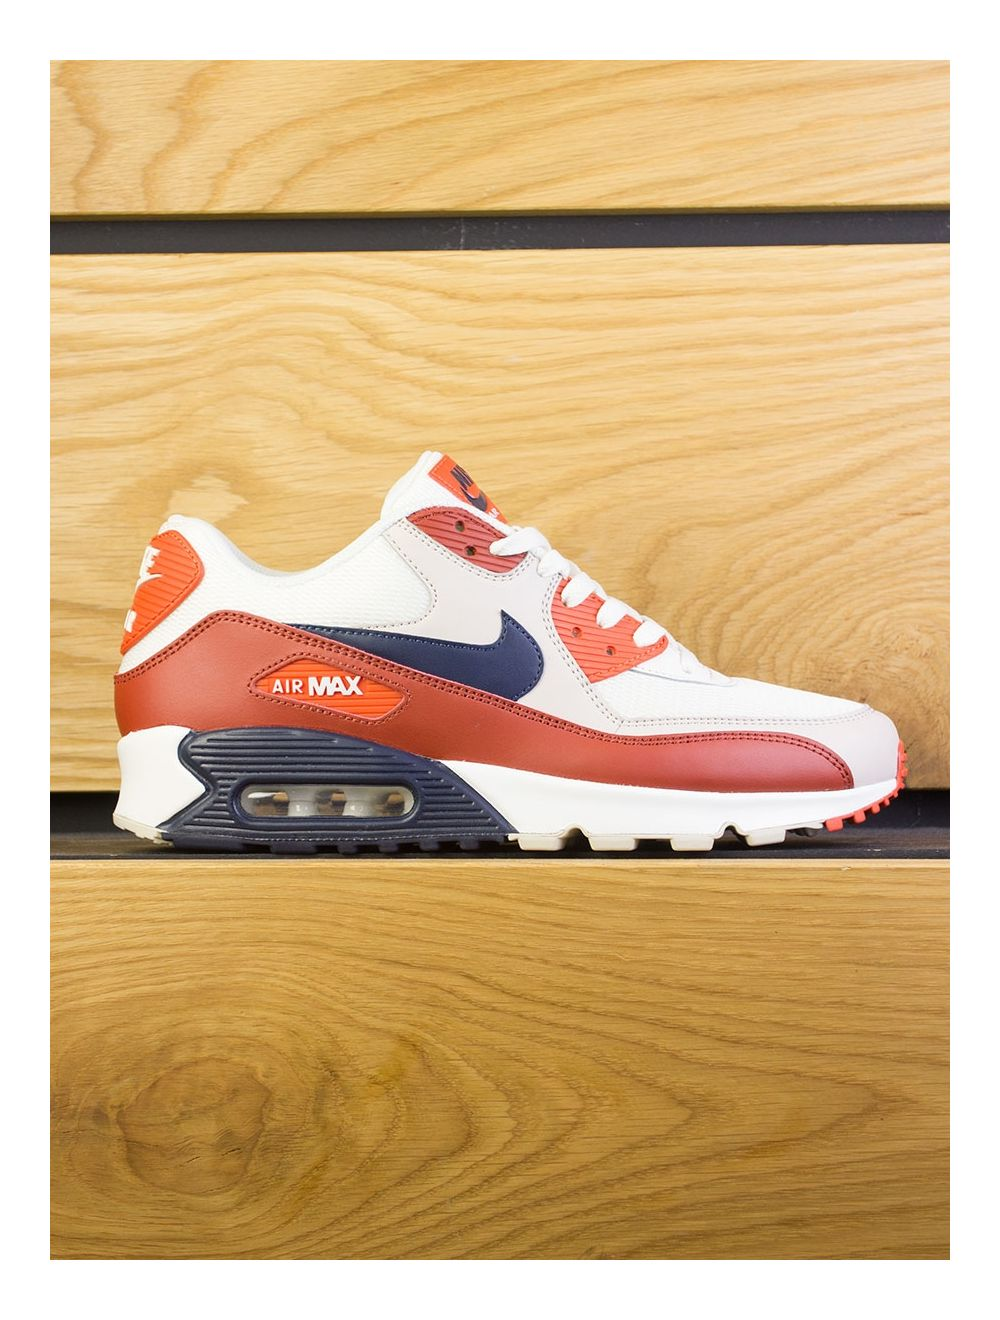 info for 7fdc9 88de6 Nike Air Max 90 Essential - Mars Stone Obsidian